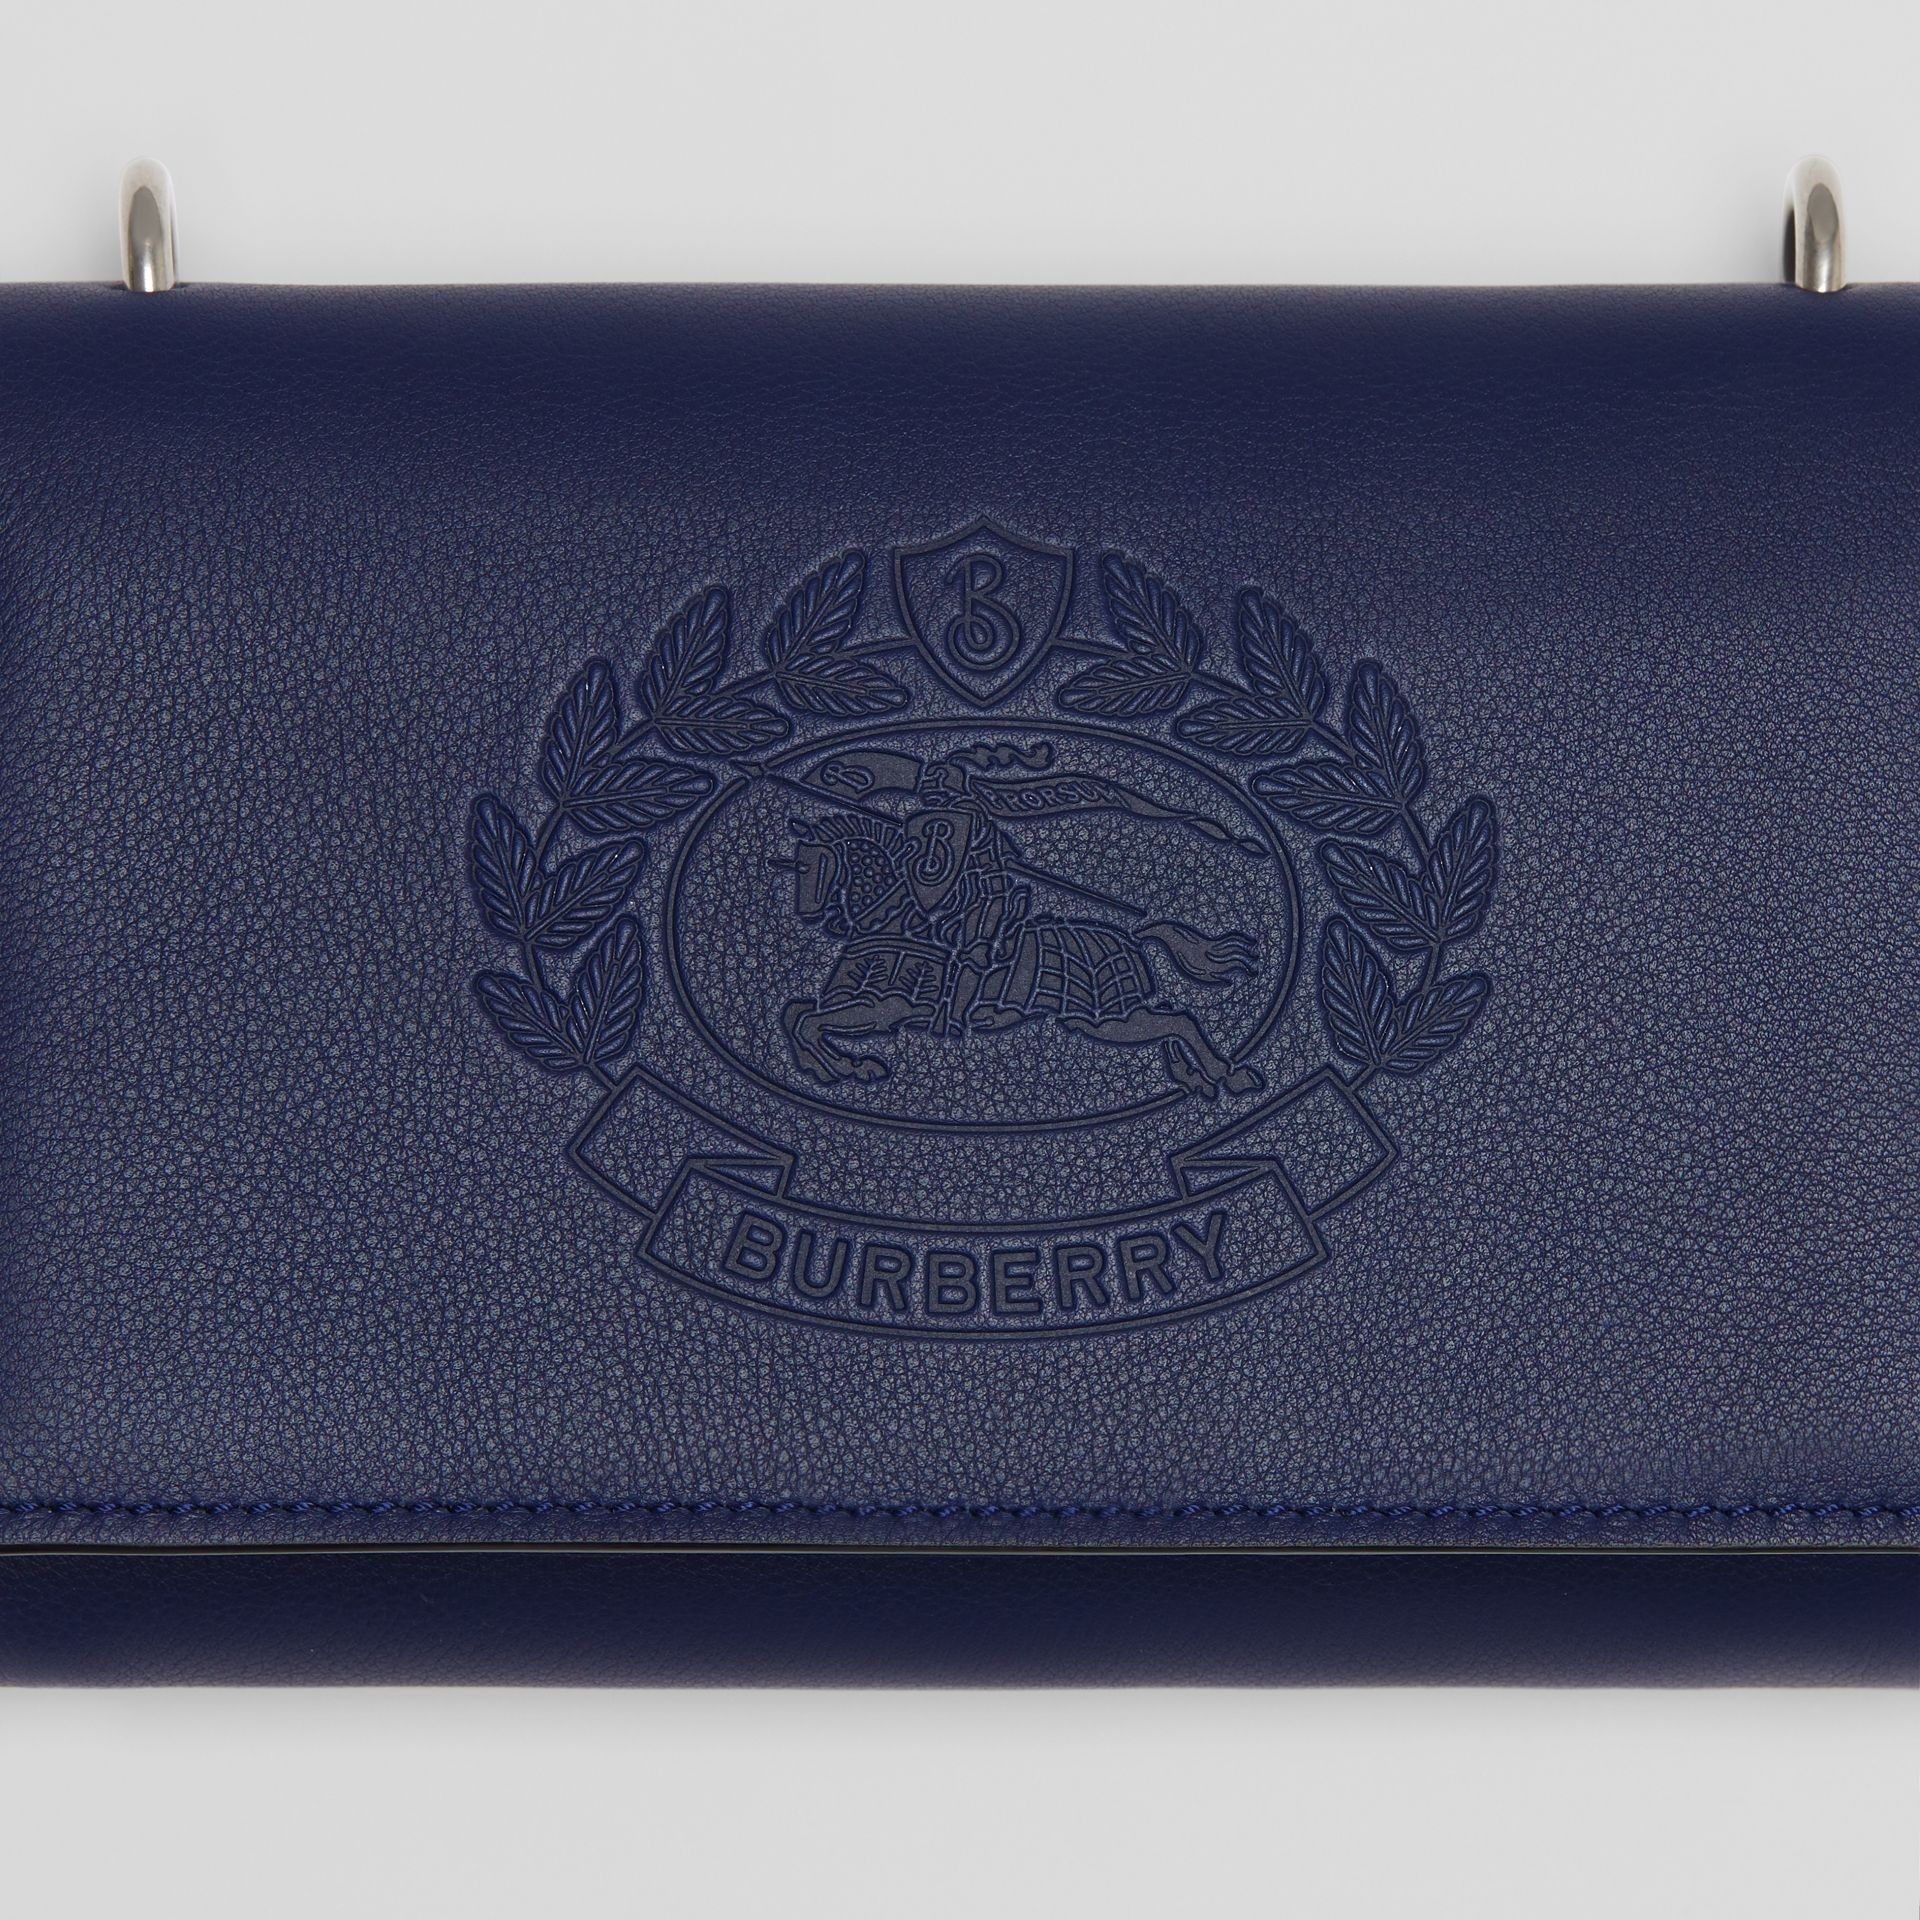 Embossed Crest Leather Wallet with Detachable Strap in Regency Blue - Women | Burberry Canada - gallery image 1